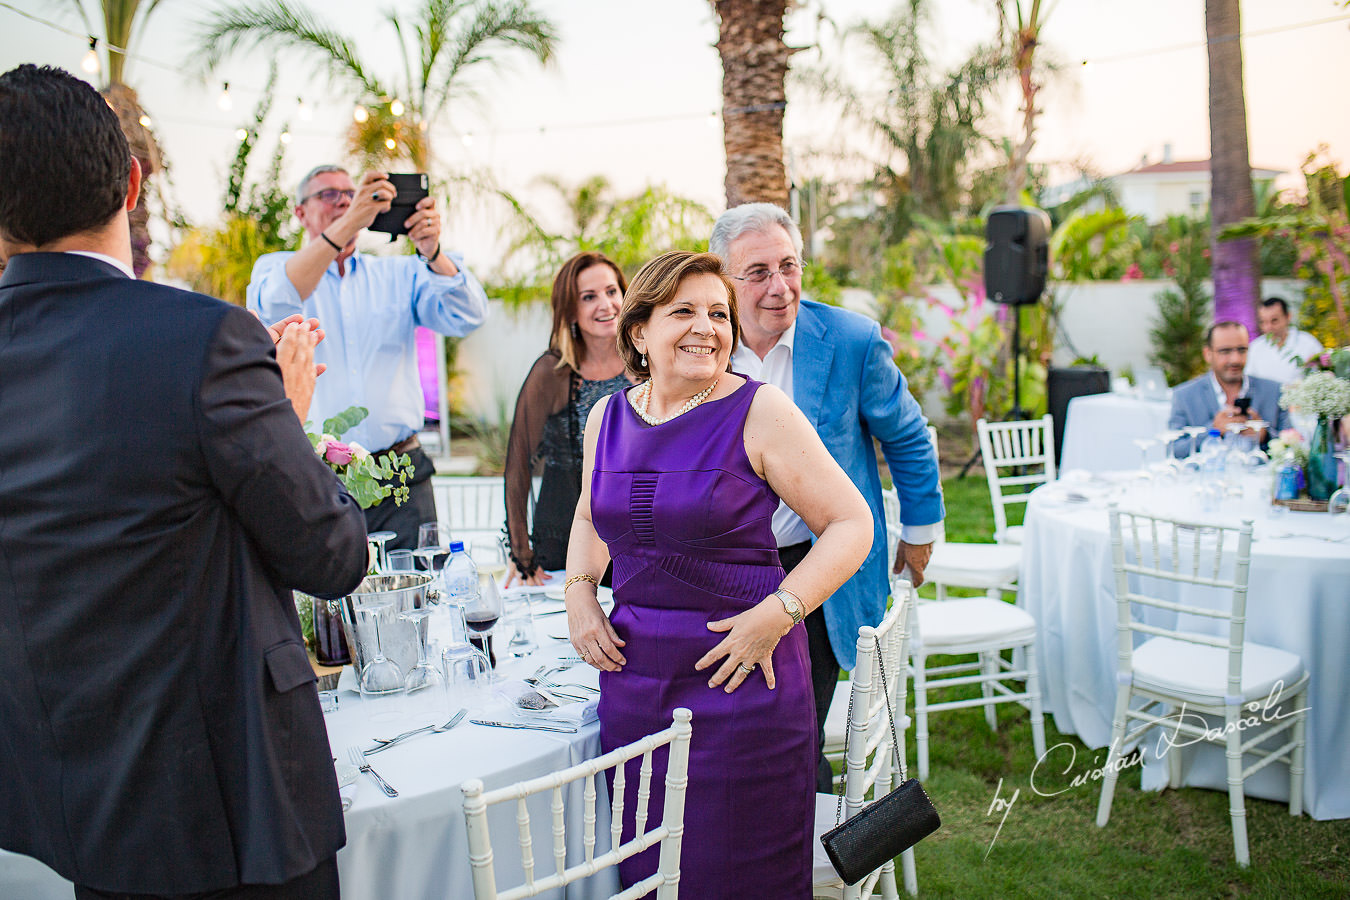 Wedding Photography at Lebay Hotel in Larnaca by Cyprus Wedding Photographer Cristian Dascalu.